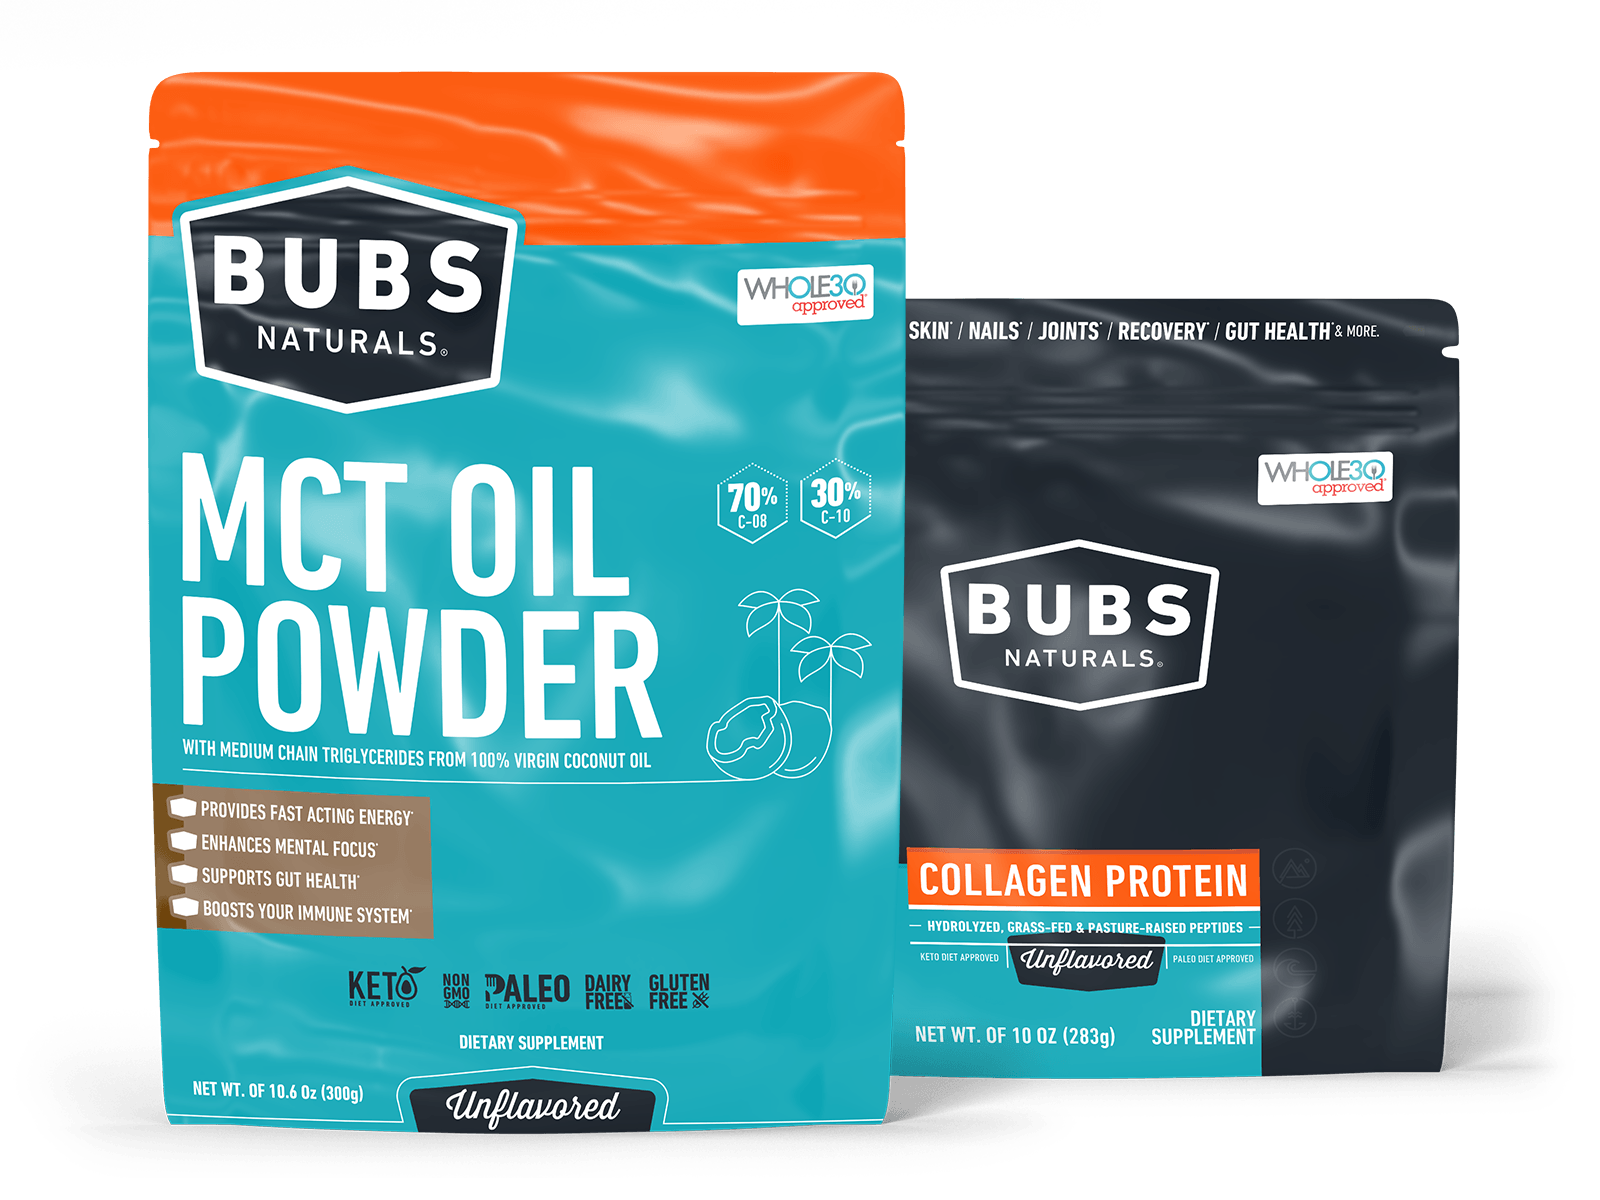 BUBS Naturals Keto Starter Bundle: MCT Oil Powder, 10.6oz and Collagen Protein Powder, 10oz